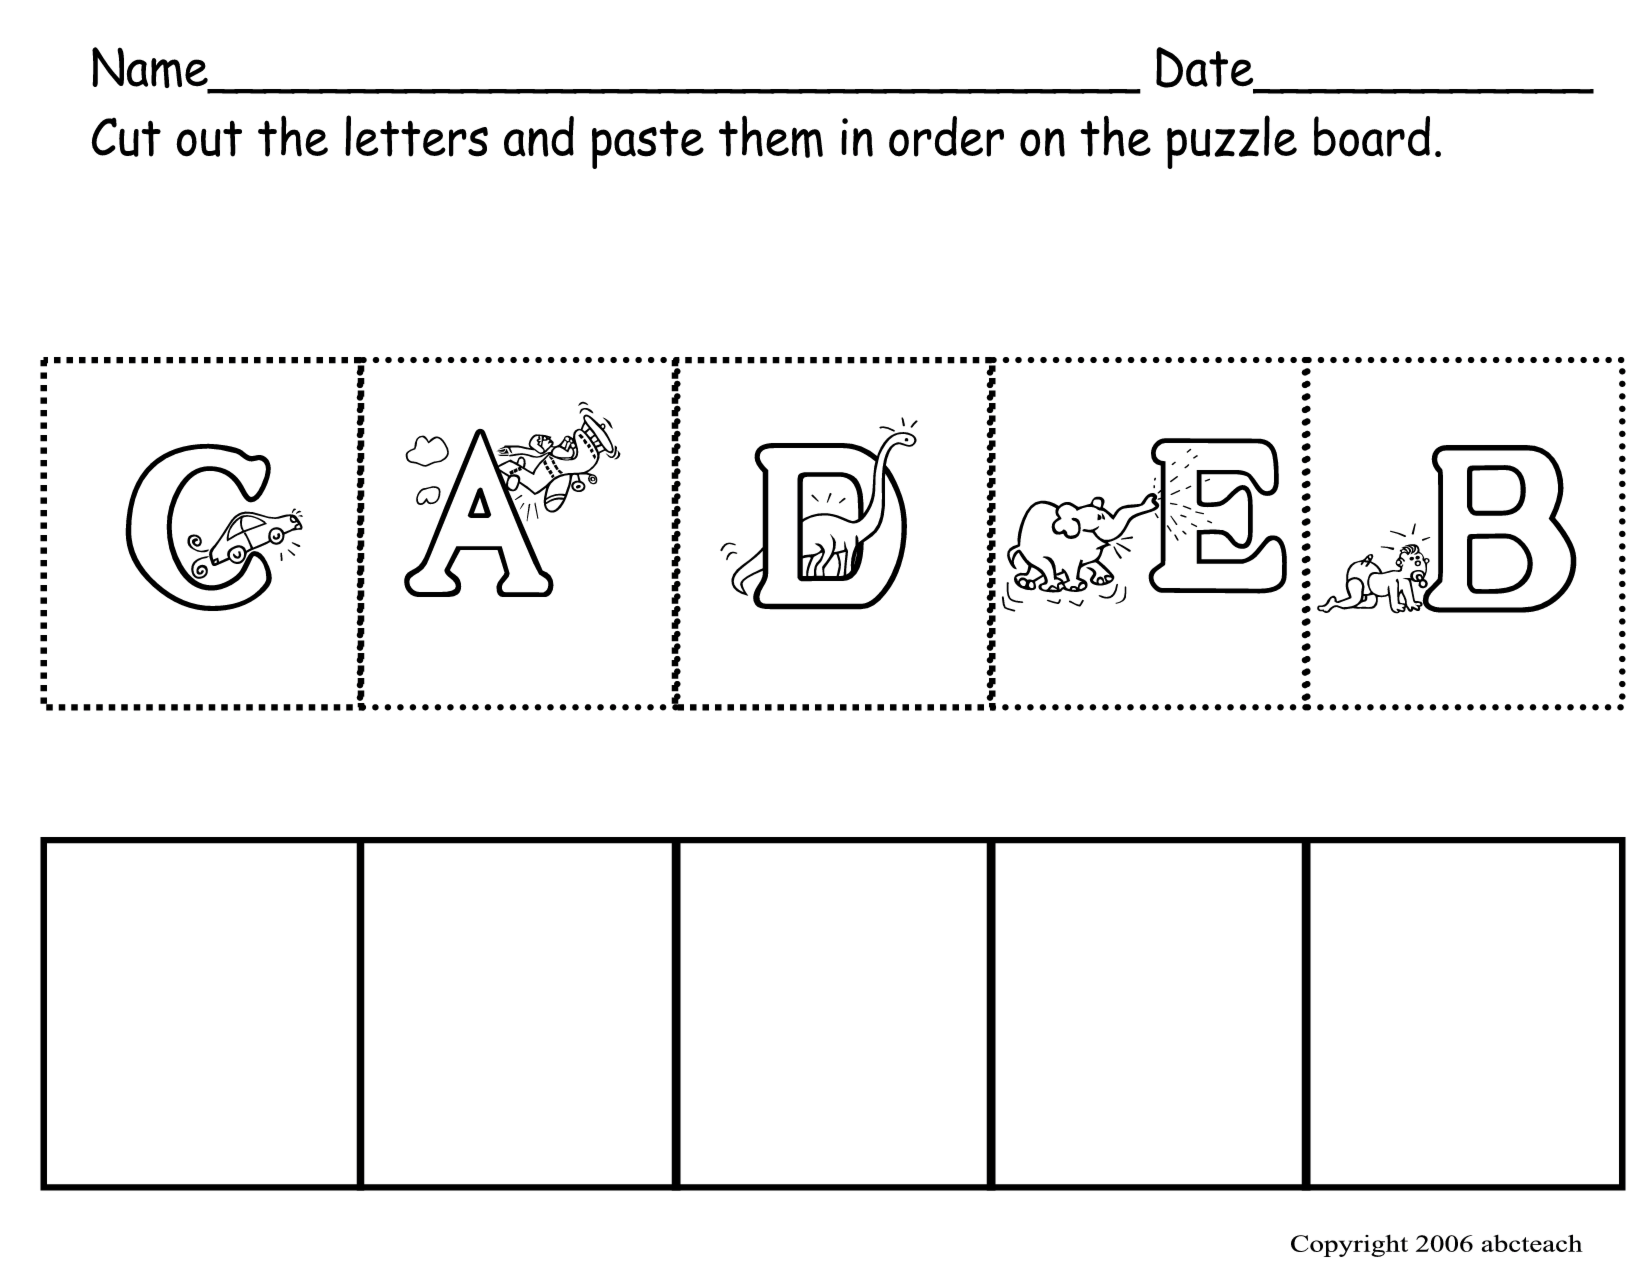 Worksheets Kindergarten Worksheets Pdf alphabet worksheets for preschoolers abc preschool pdf pdf